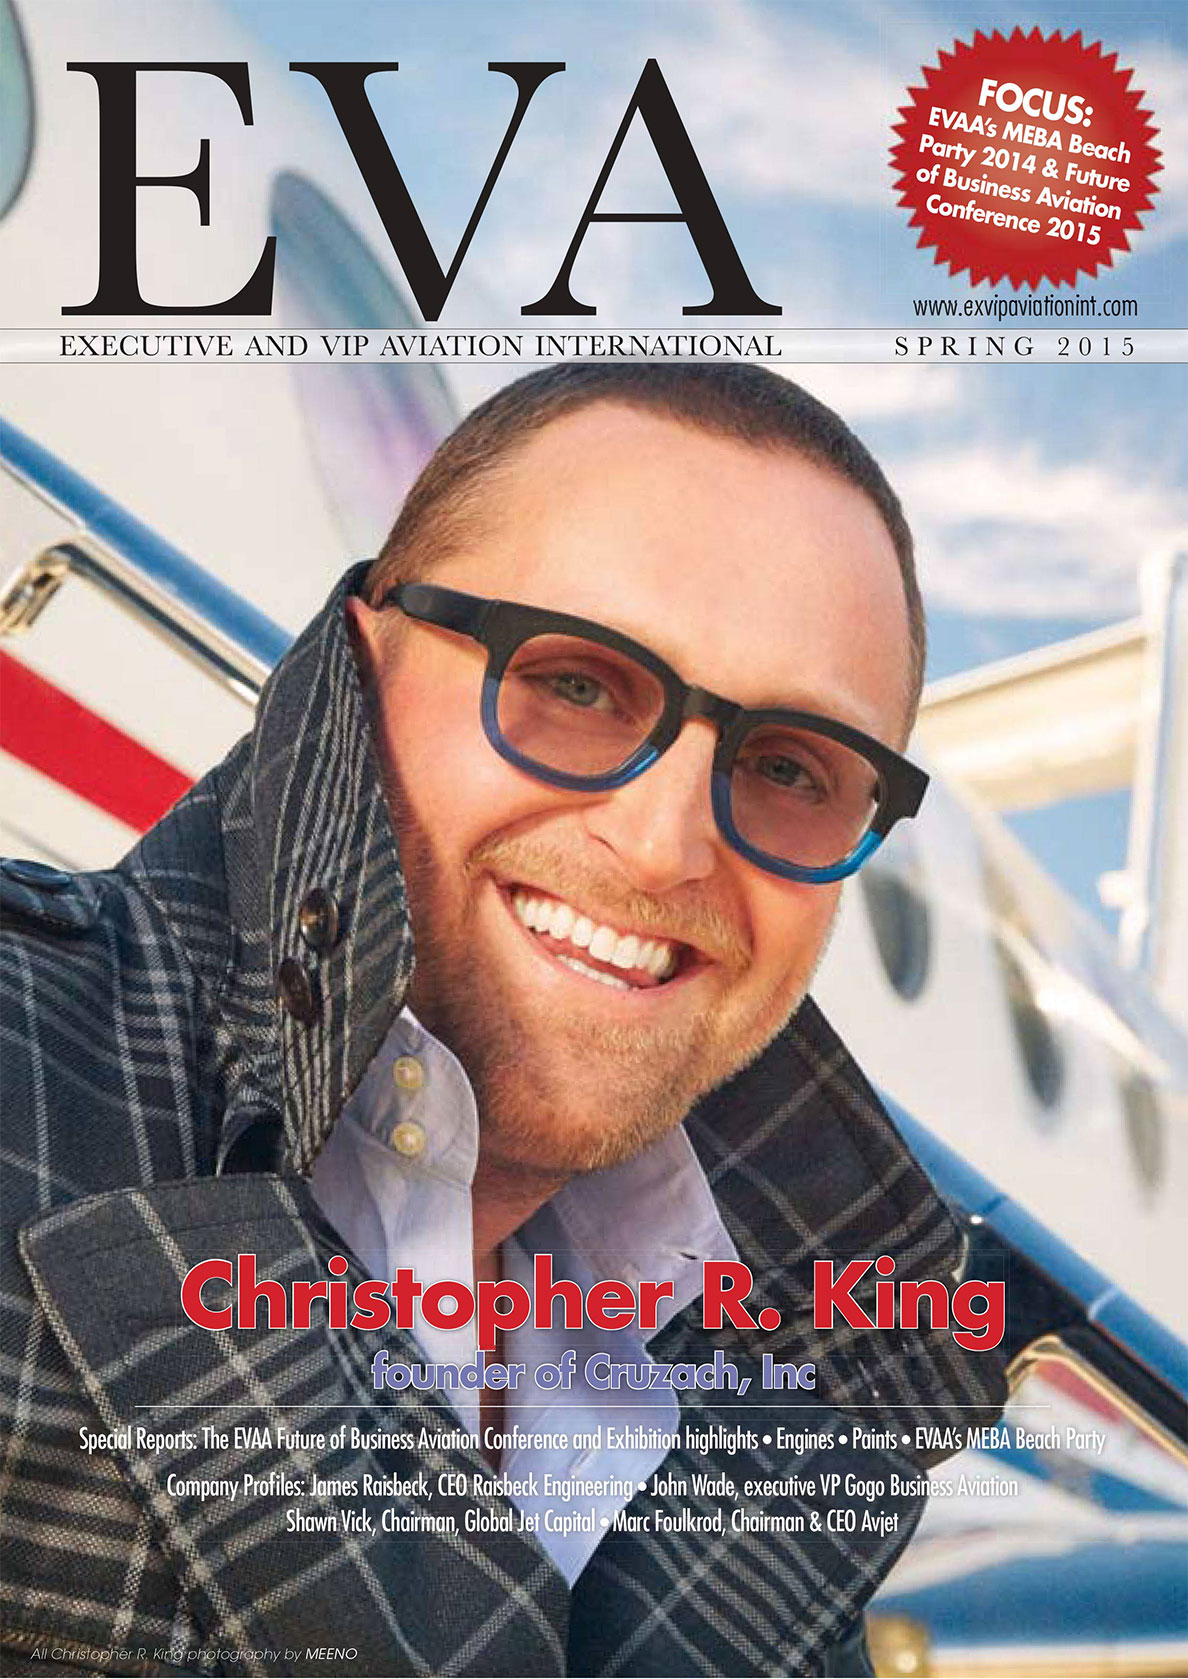 Interview with Christopher R. King for EVA Magazine